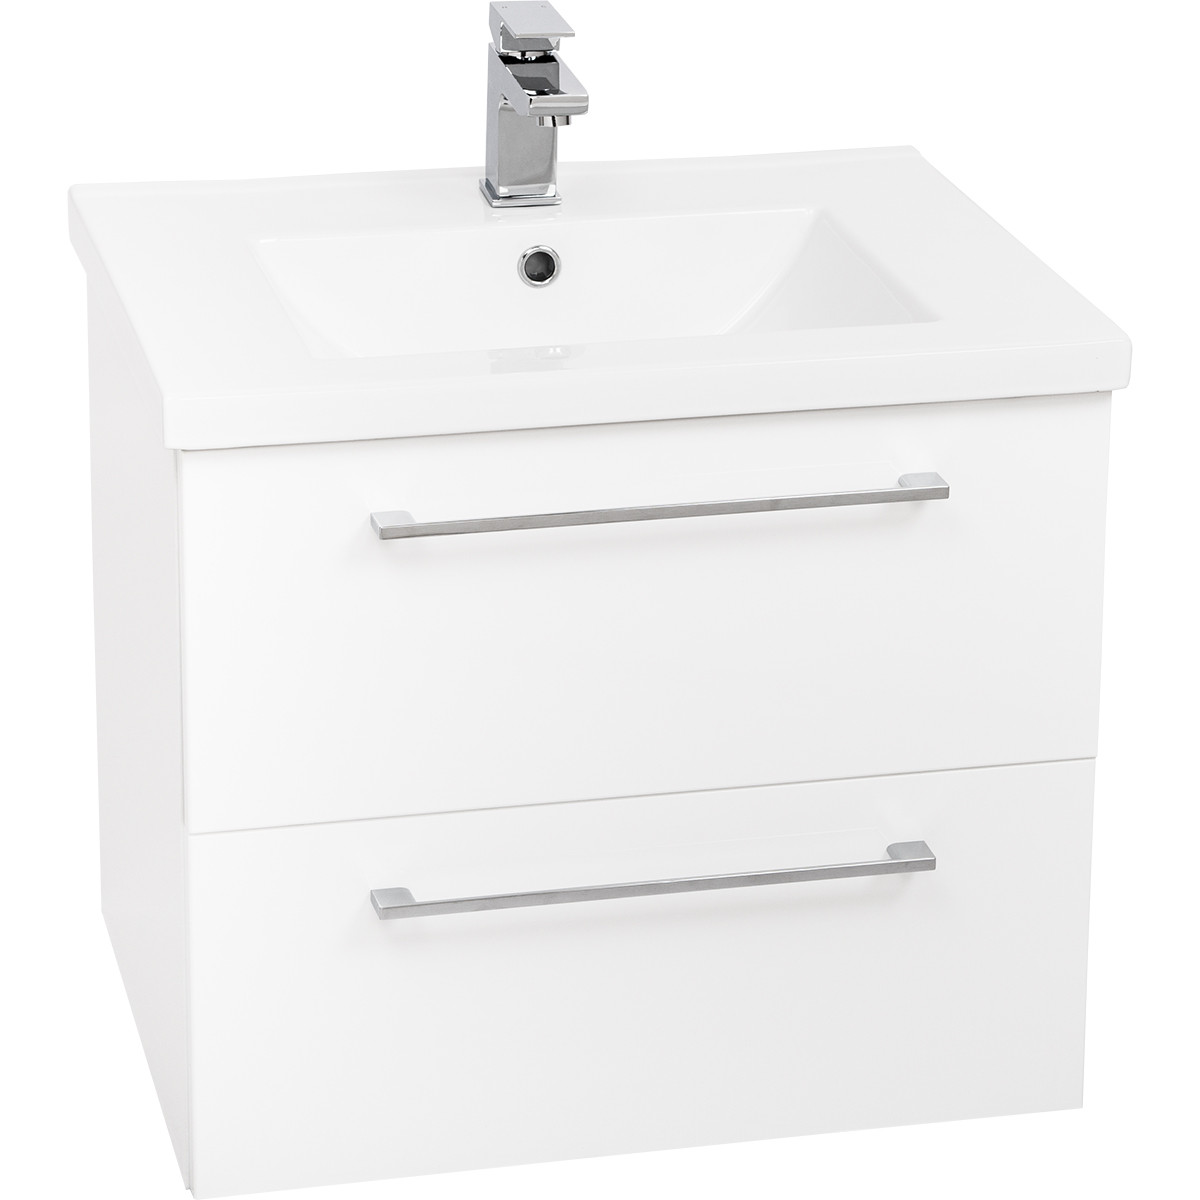 Napoli Gloss White 2 Drawer 600 Wall Mounted Unit & Basin